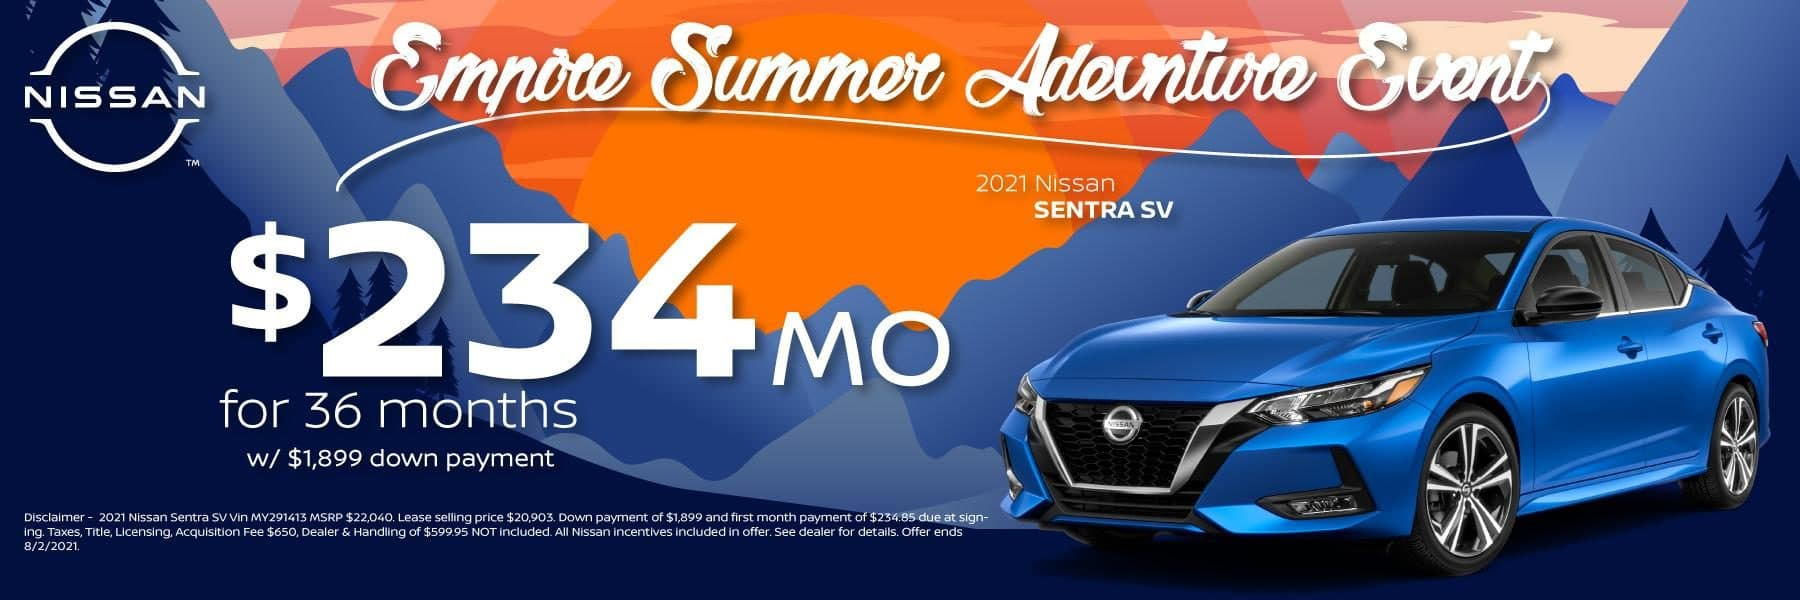 Best new 2021 Nissan Sentra Lease and Purchase Specials in Denver and Littleton, CO